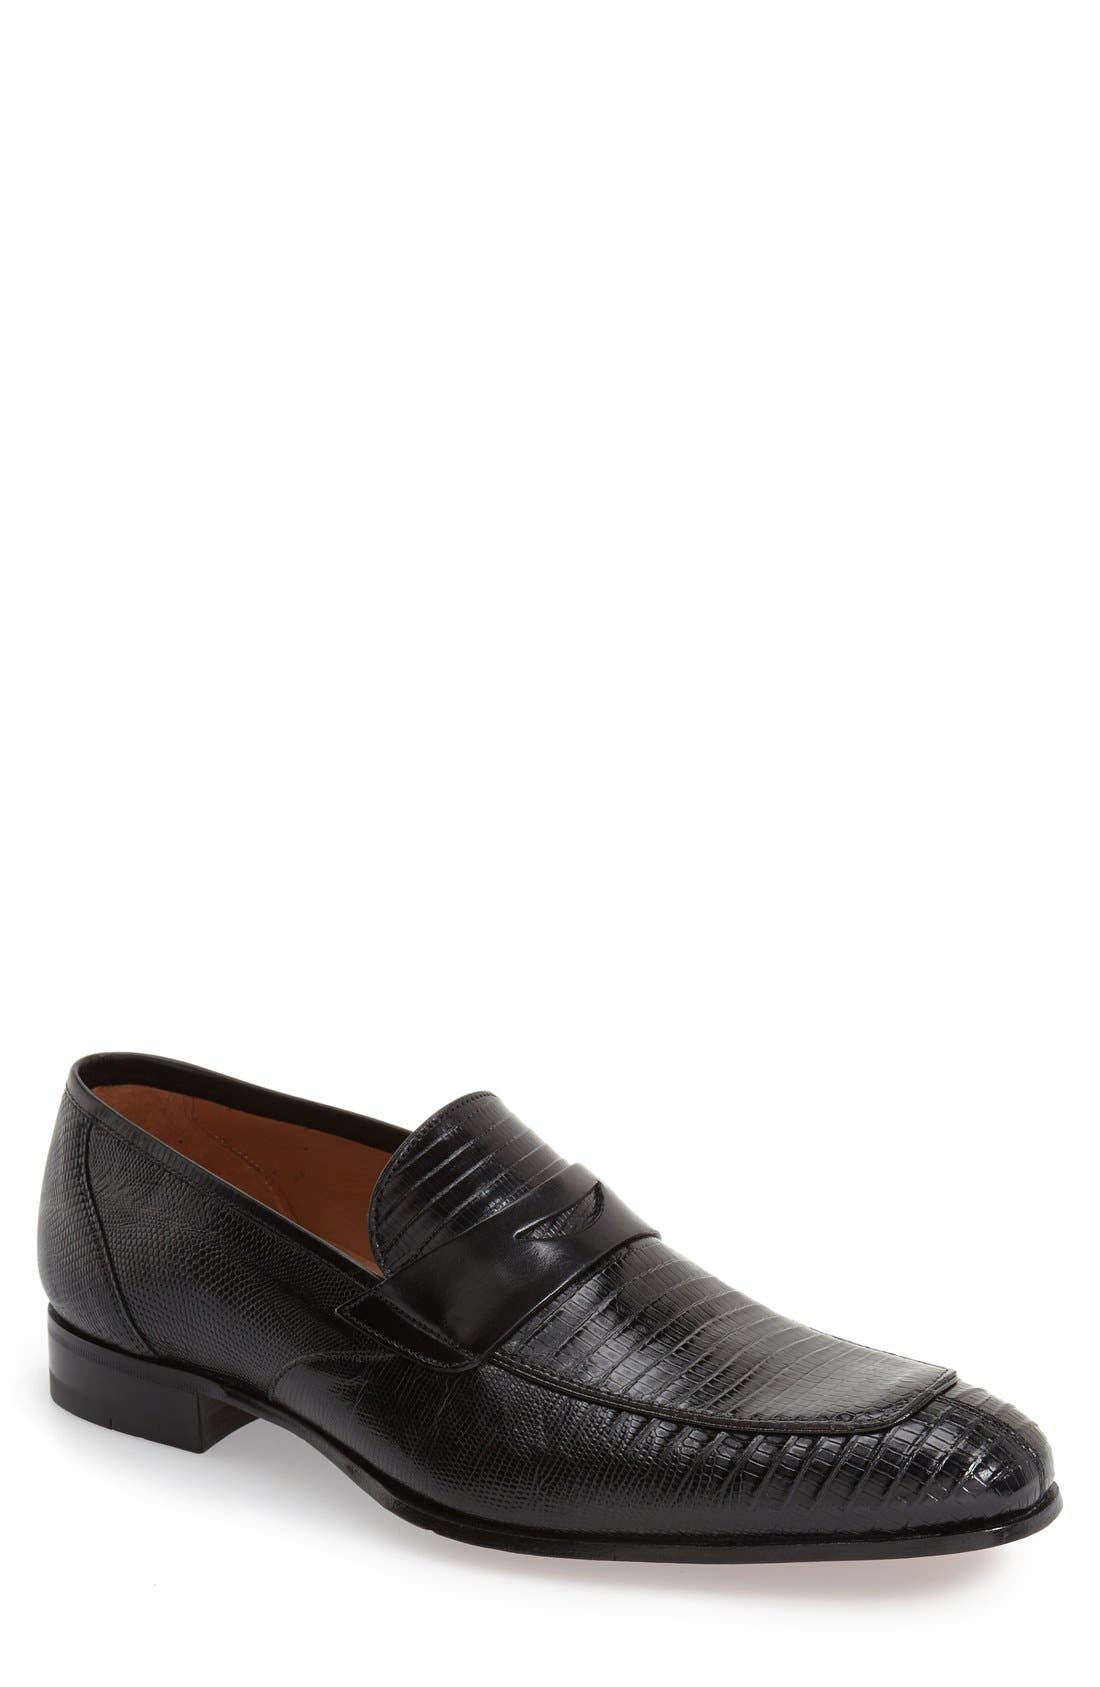 'Lipari' Lizard Leather Penny Loafer,                         Main,                         color, BLACK